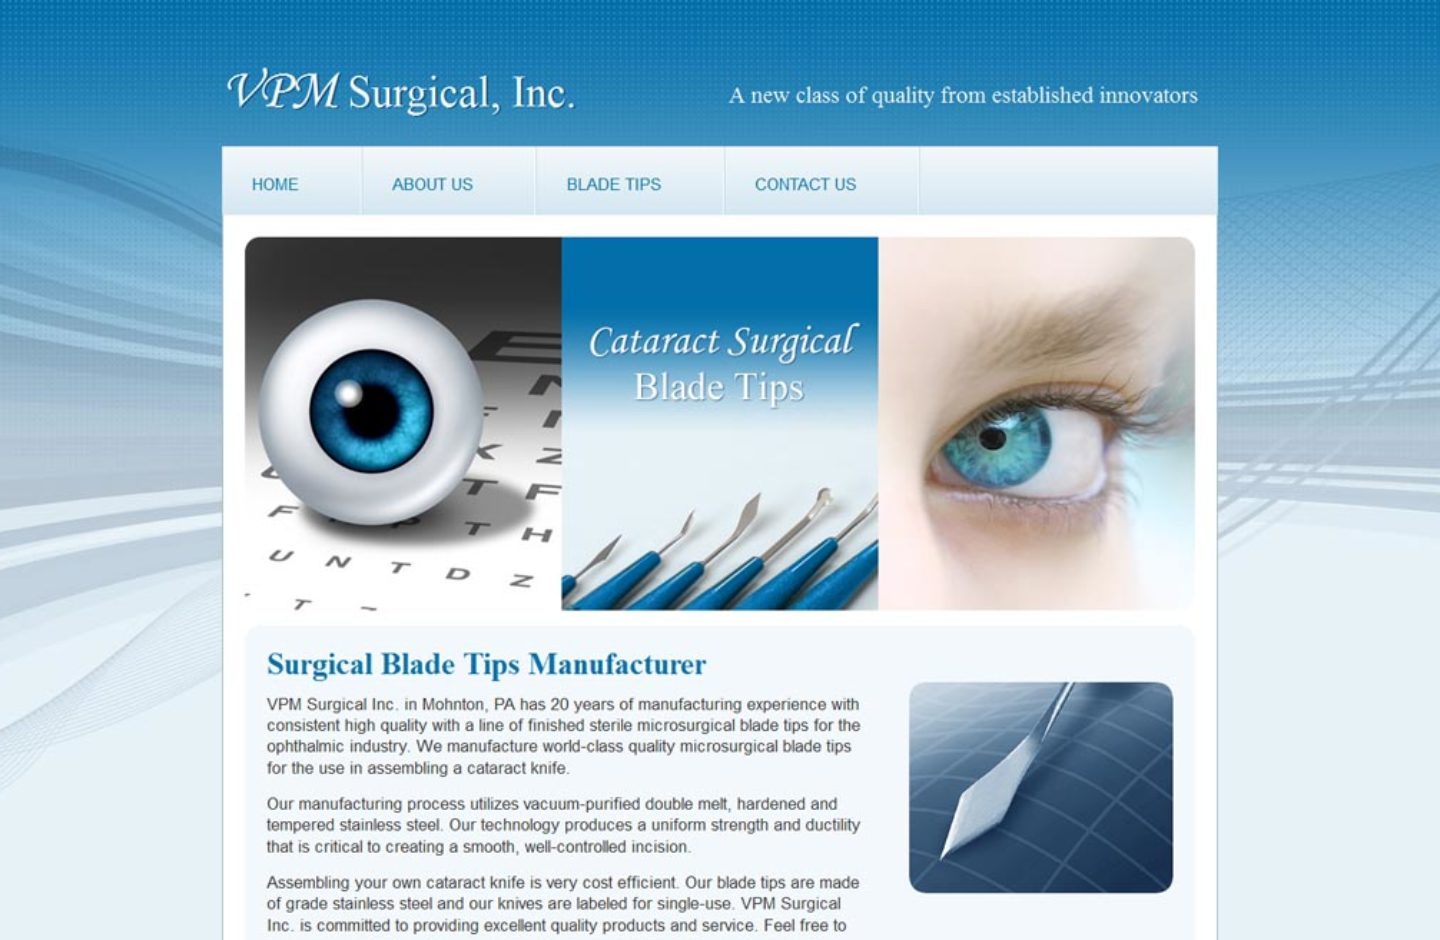 VPM Surgical